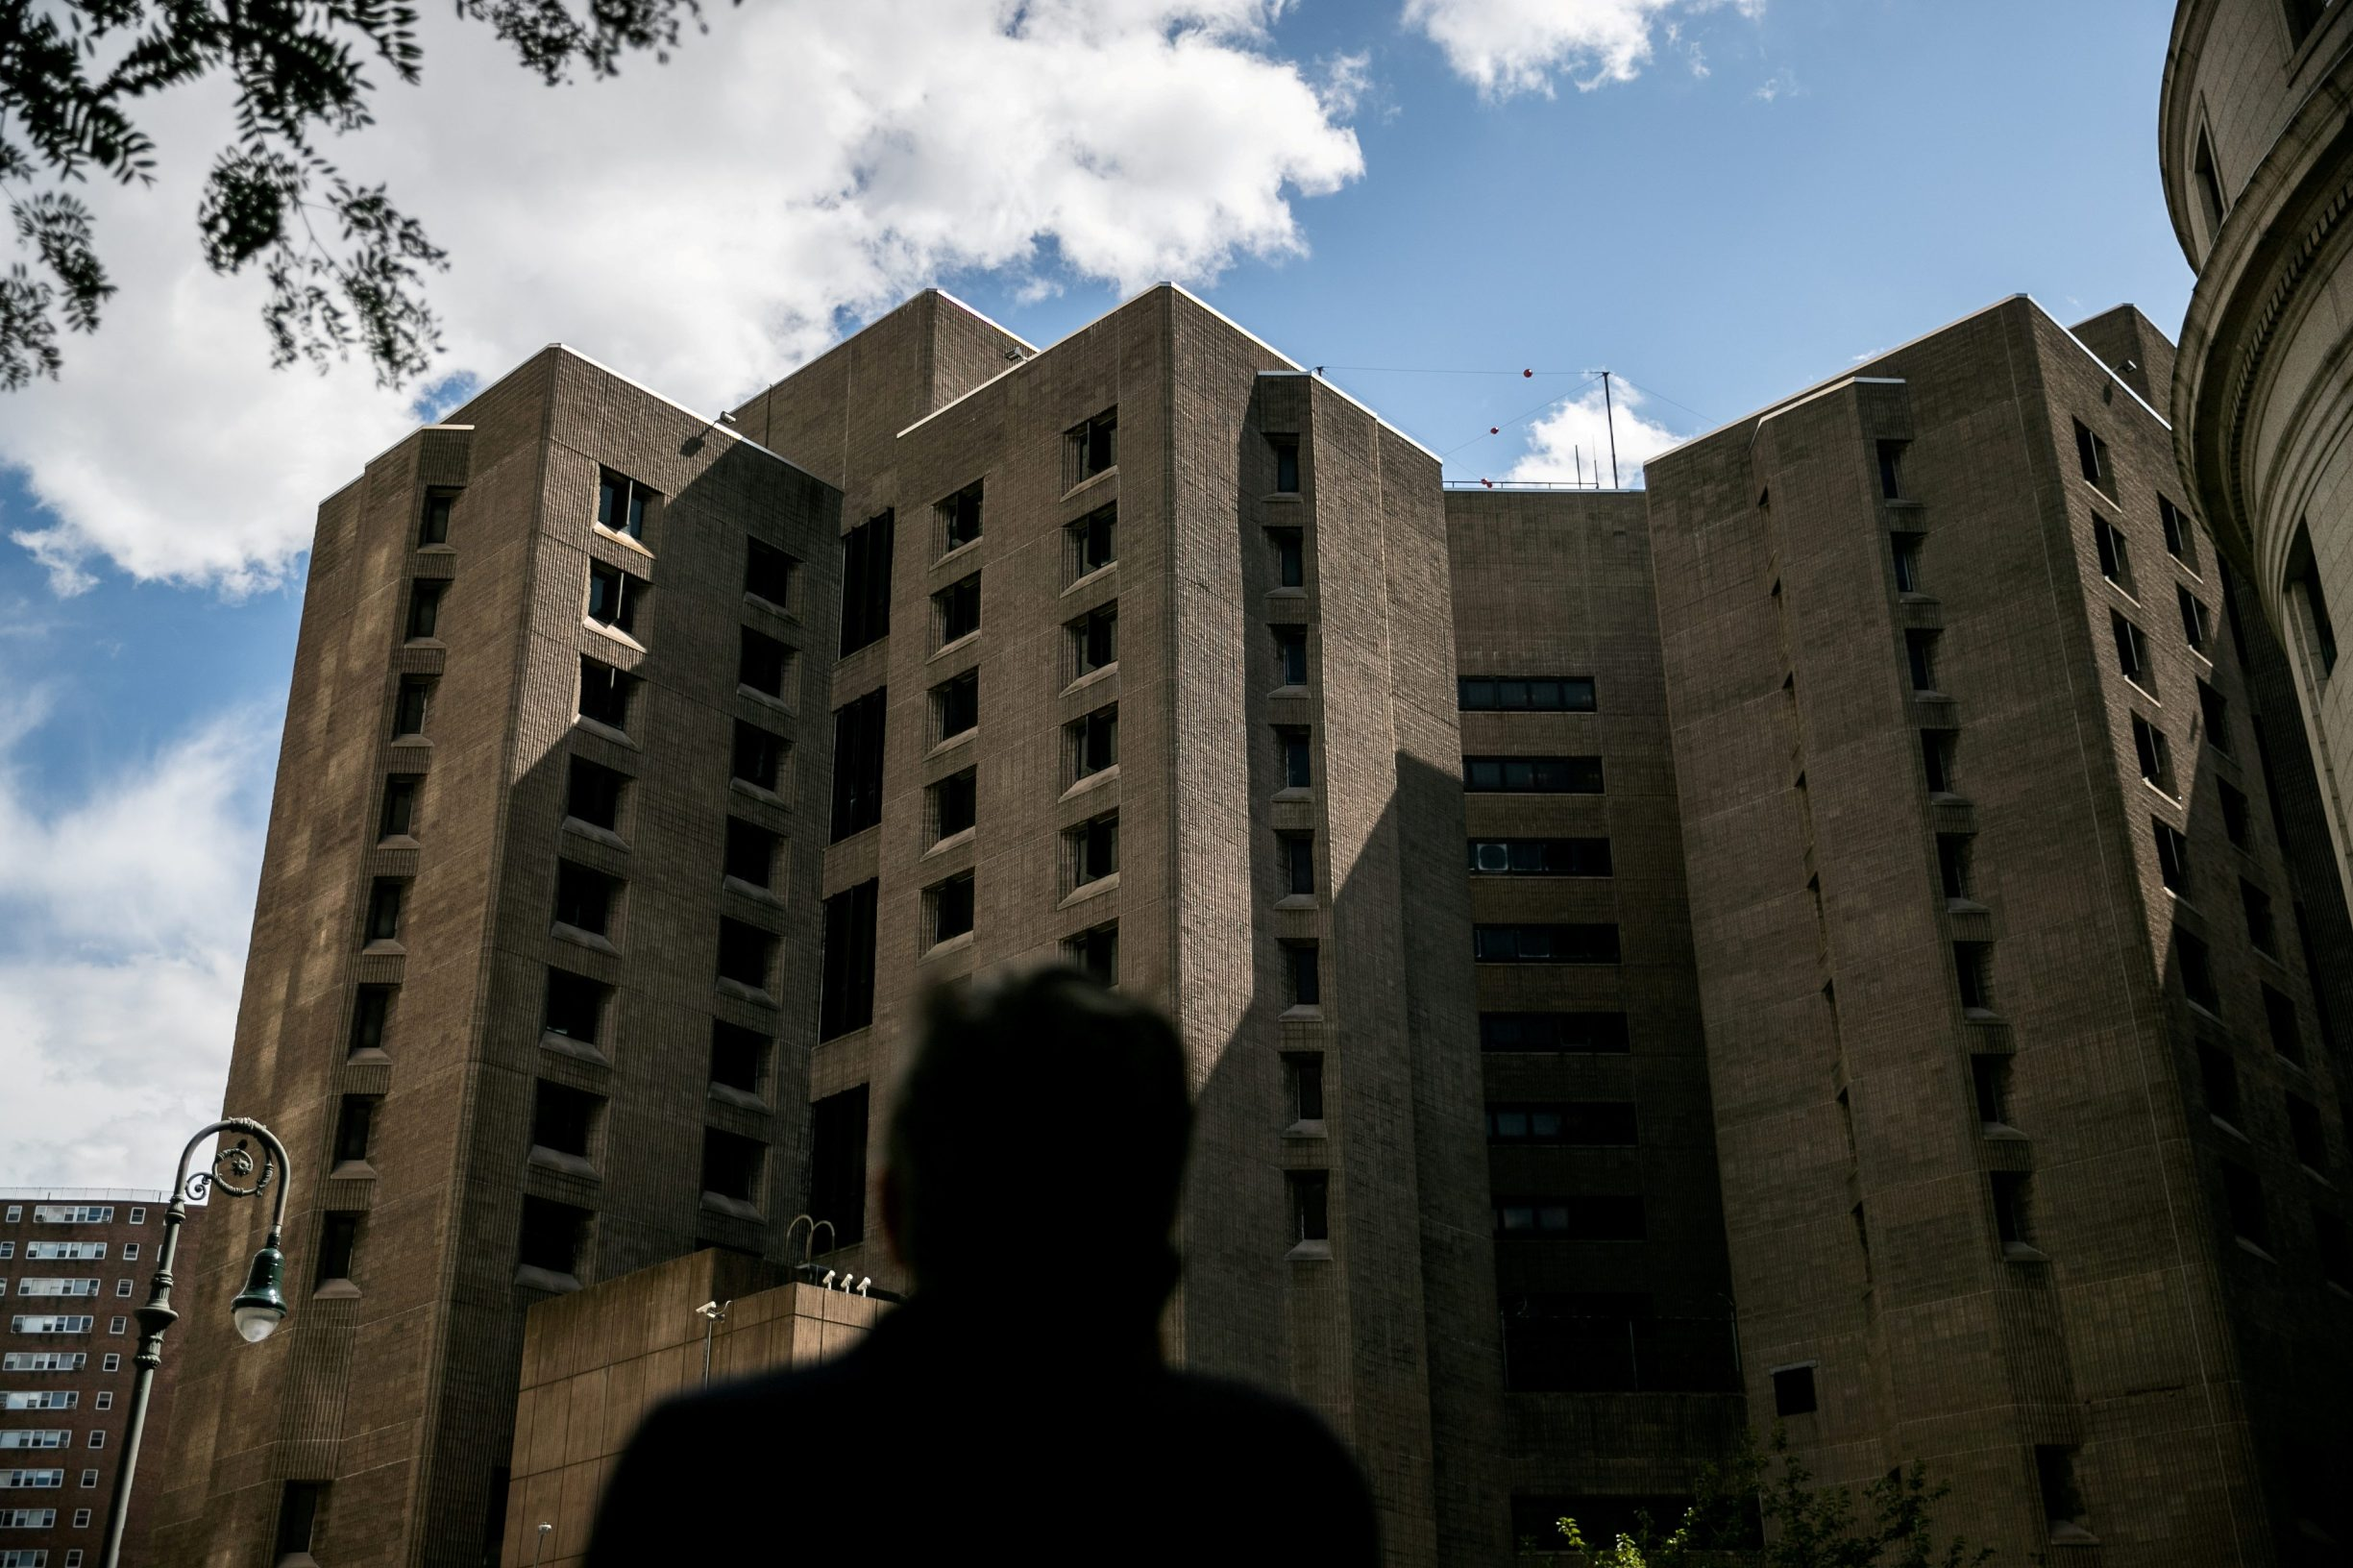 FILE PHOTO: An exterior view of the Metropolitan Correctional Center jail where financier Jeffrey Epstein, who was found dead in the Manhattan borough of New York City, New York, U.S., August 10, 2019. REUTERS/Jeenah Moon/File Photo